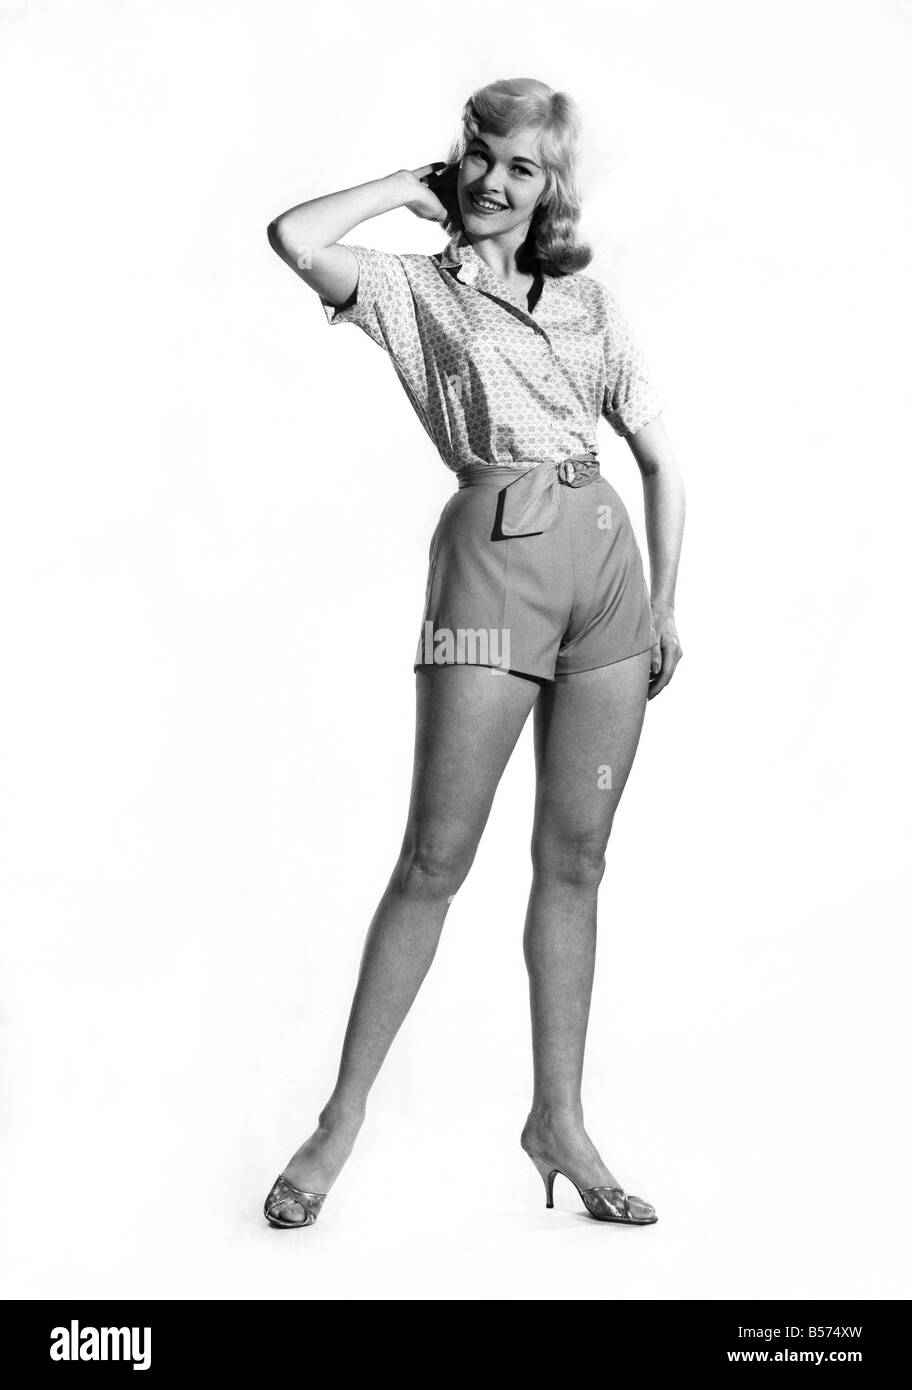 Reveille fashions 1960: Jo Waring modelling sa summer outfit of short sleeve blouse and shorts . March 1960 P008977 - Stock Image